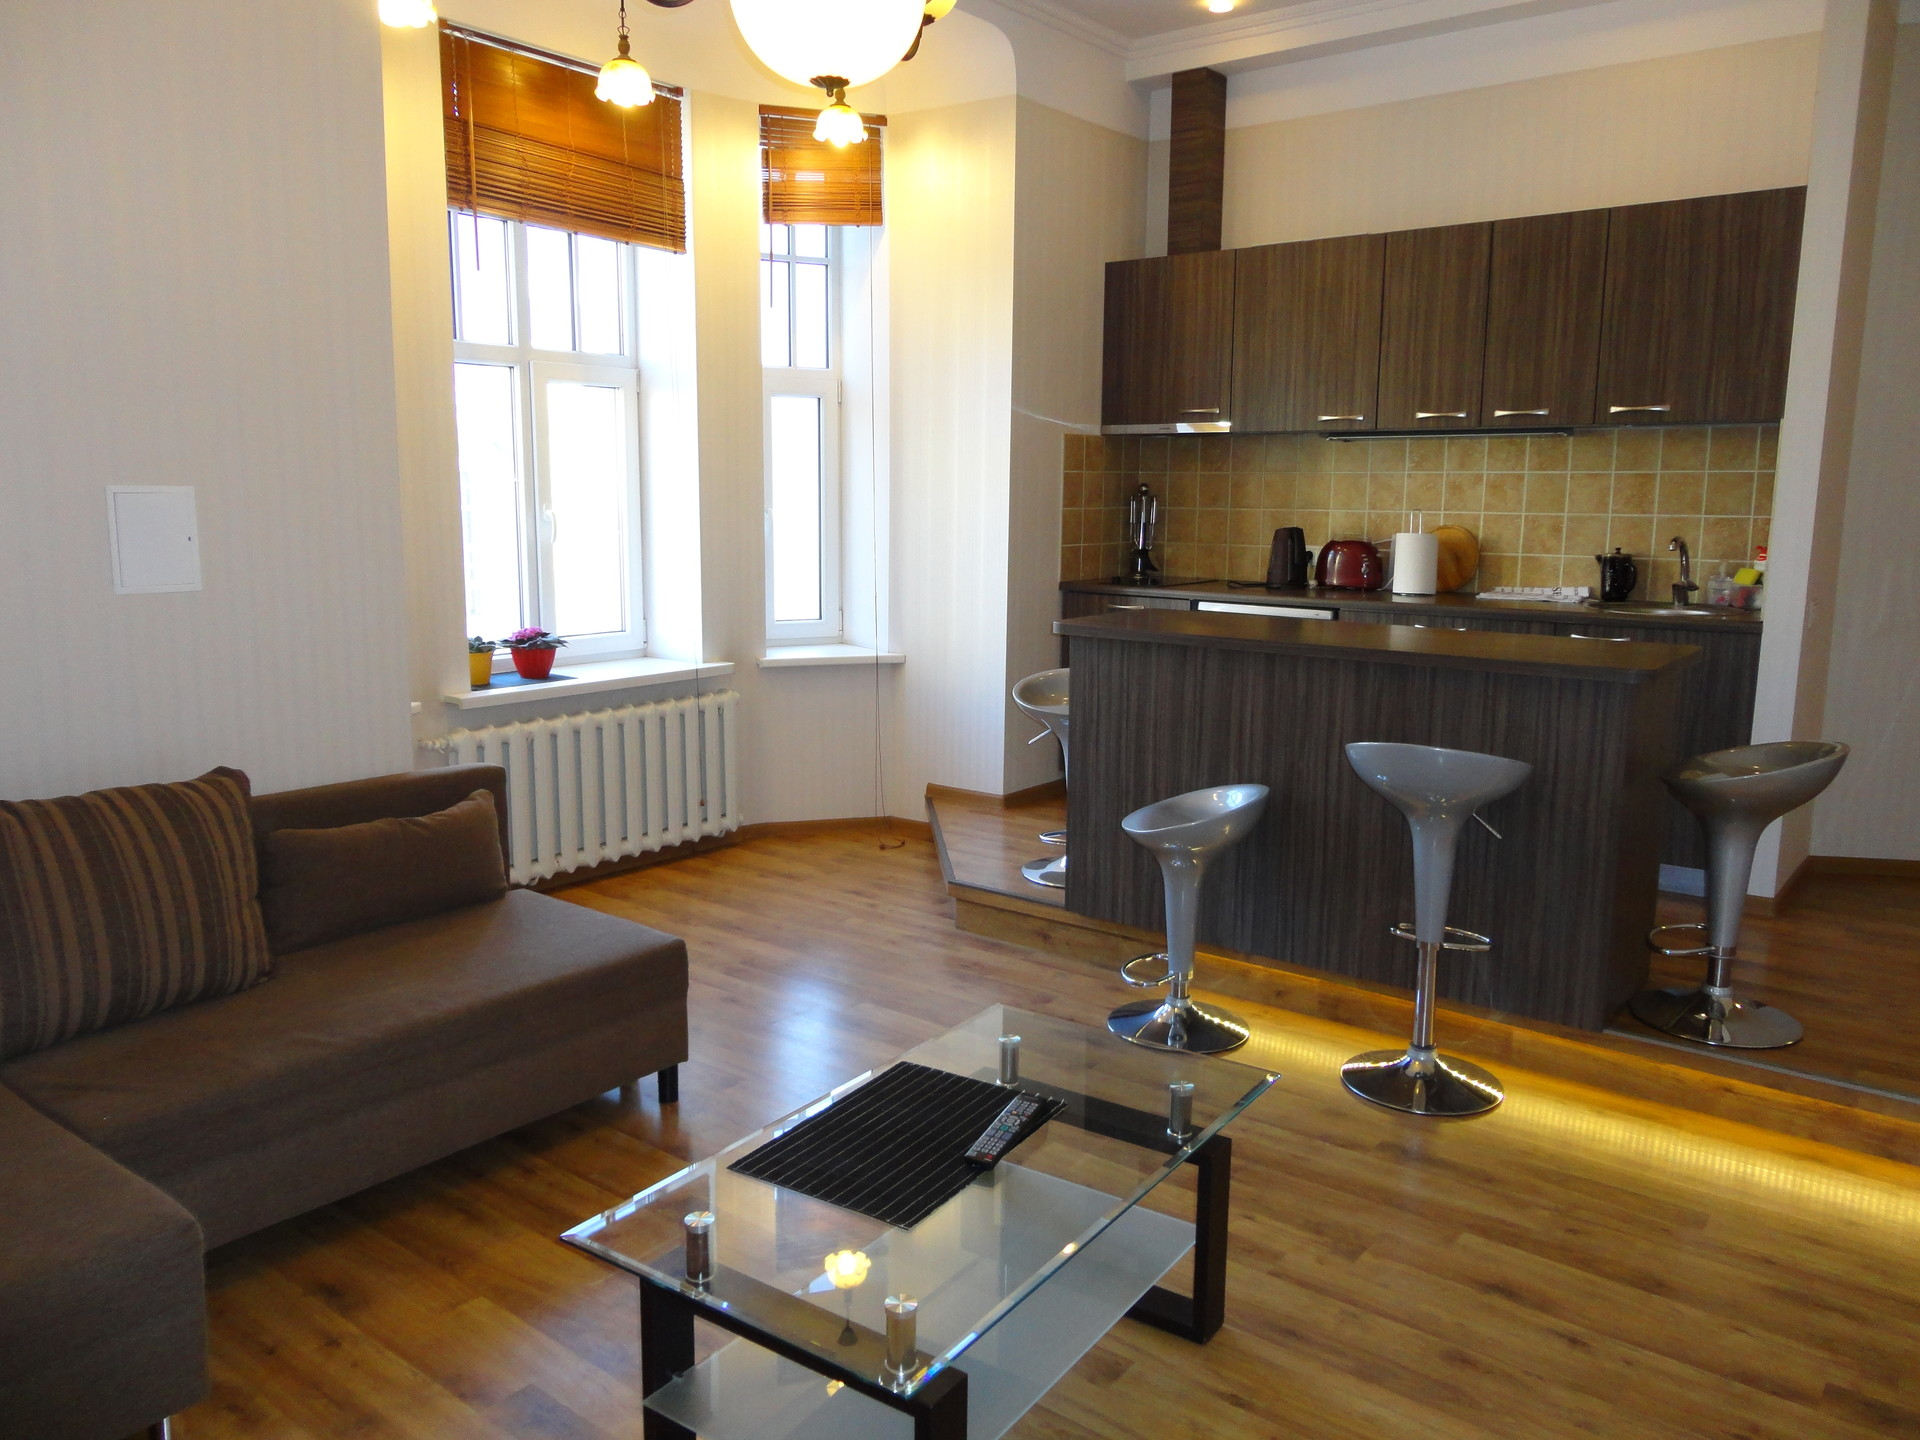 sunny-nice-apartment-center-riga-4921d46a6c0b11e2e16b3e3ebf30ebfd